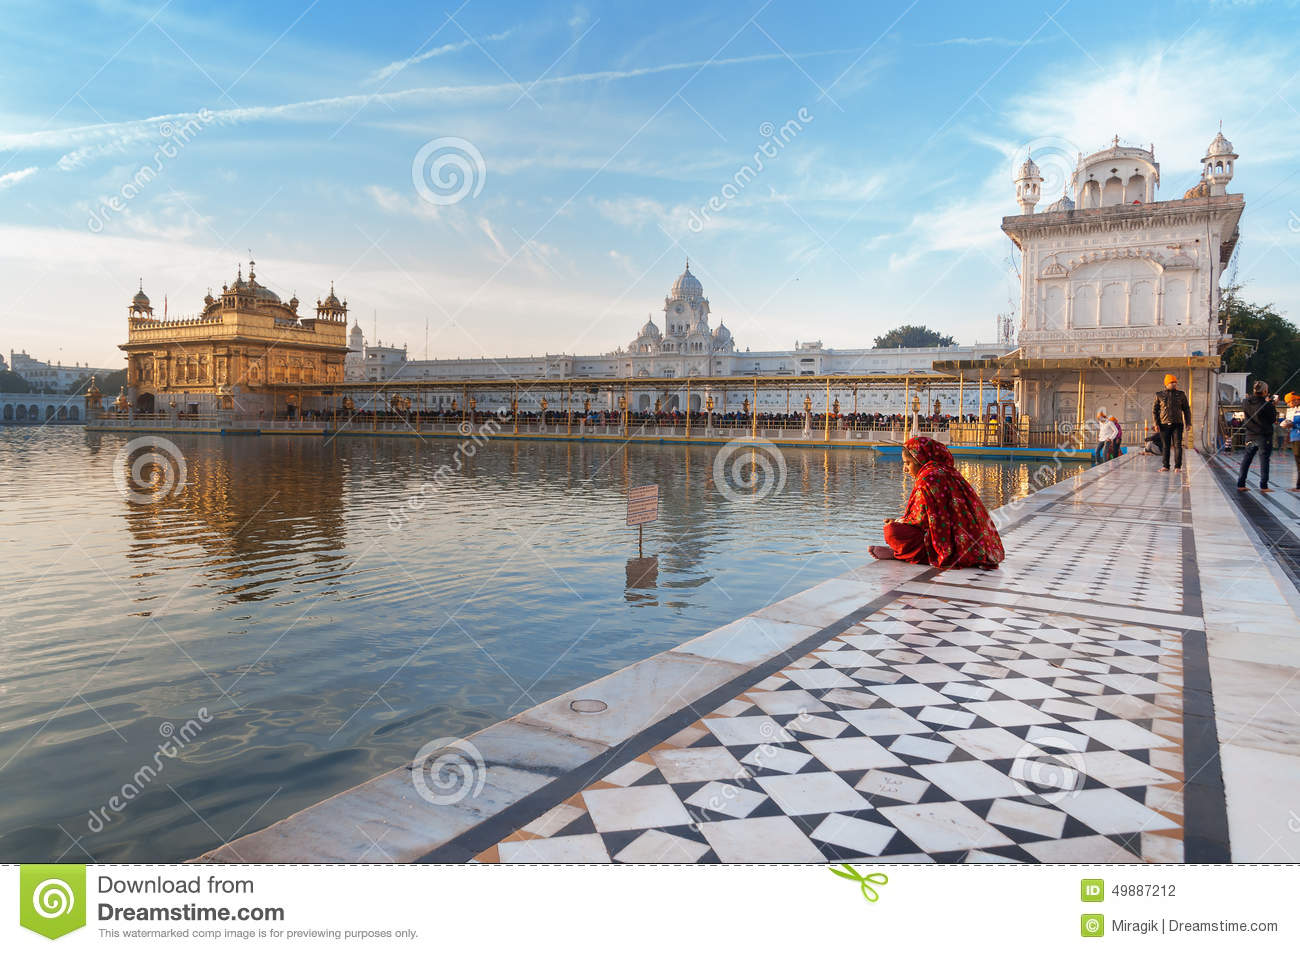 3d Khanda Wallpaper Woman In A Red Saree Sits And Pray In Golden Temple In The